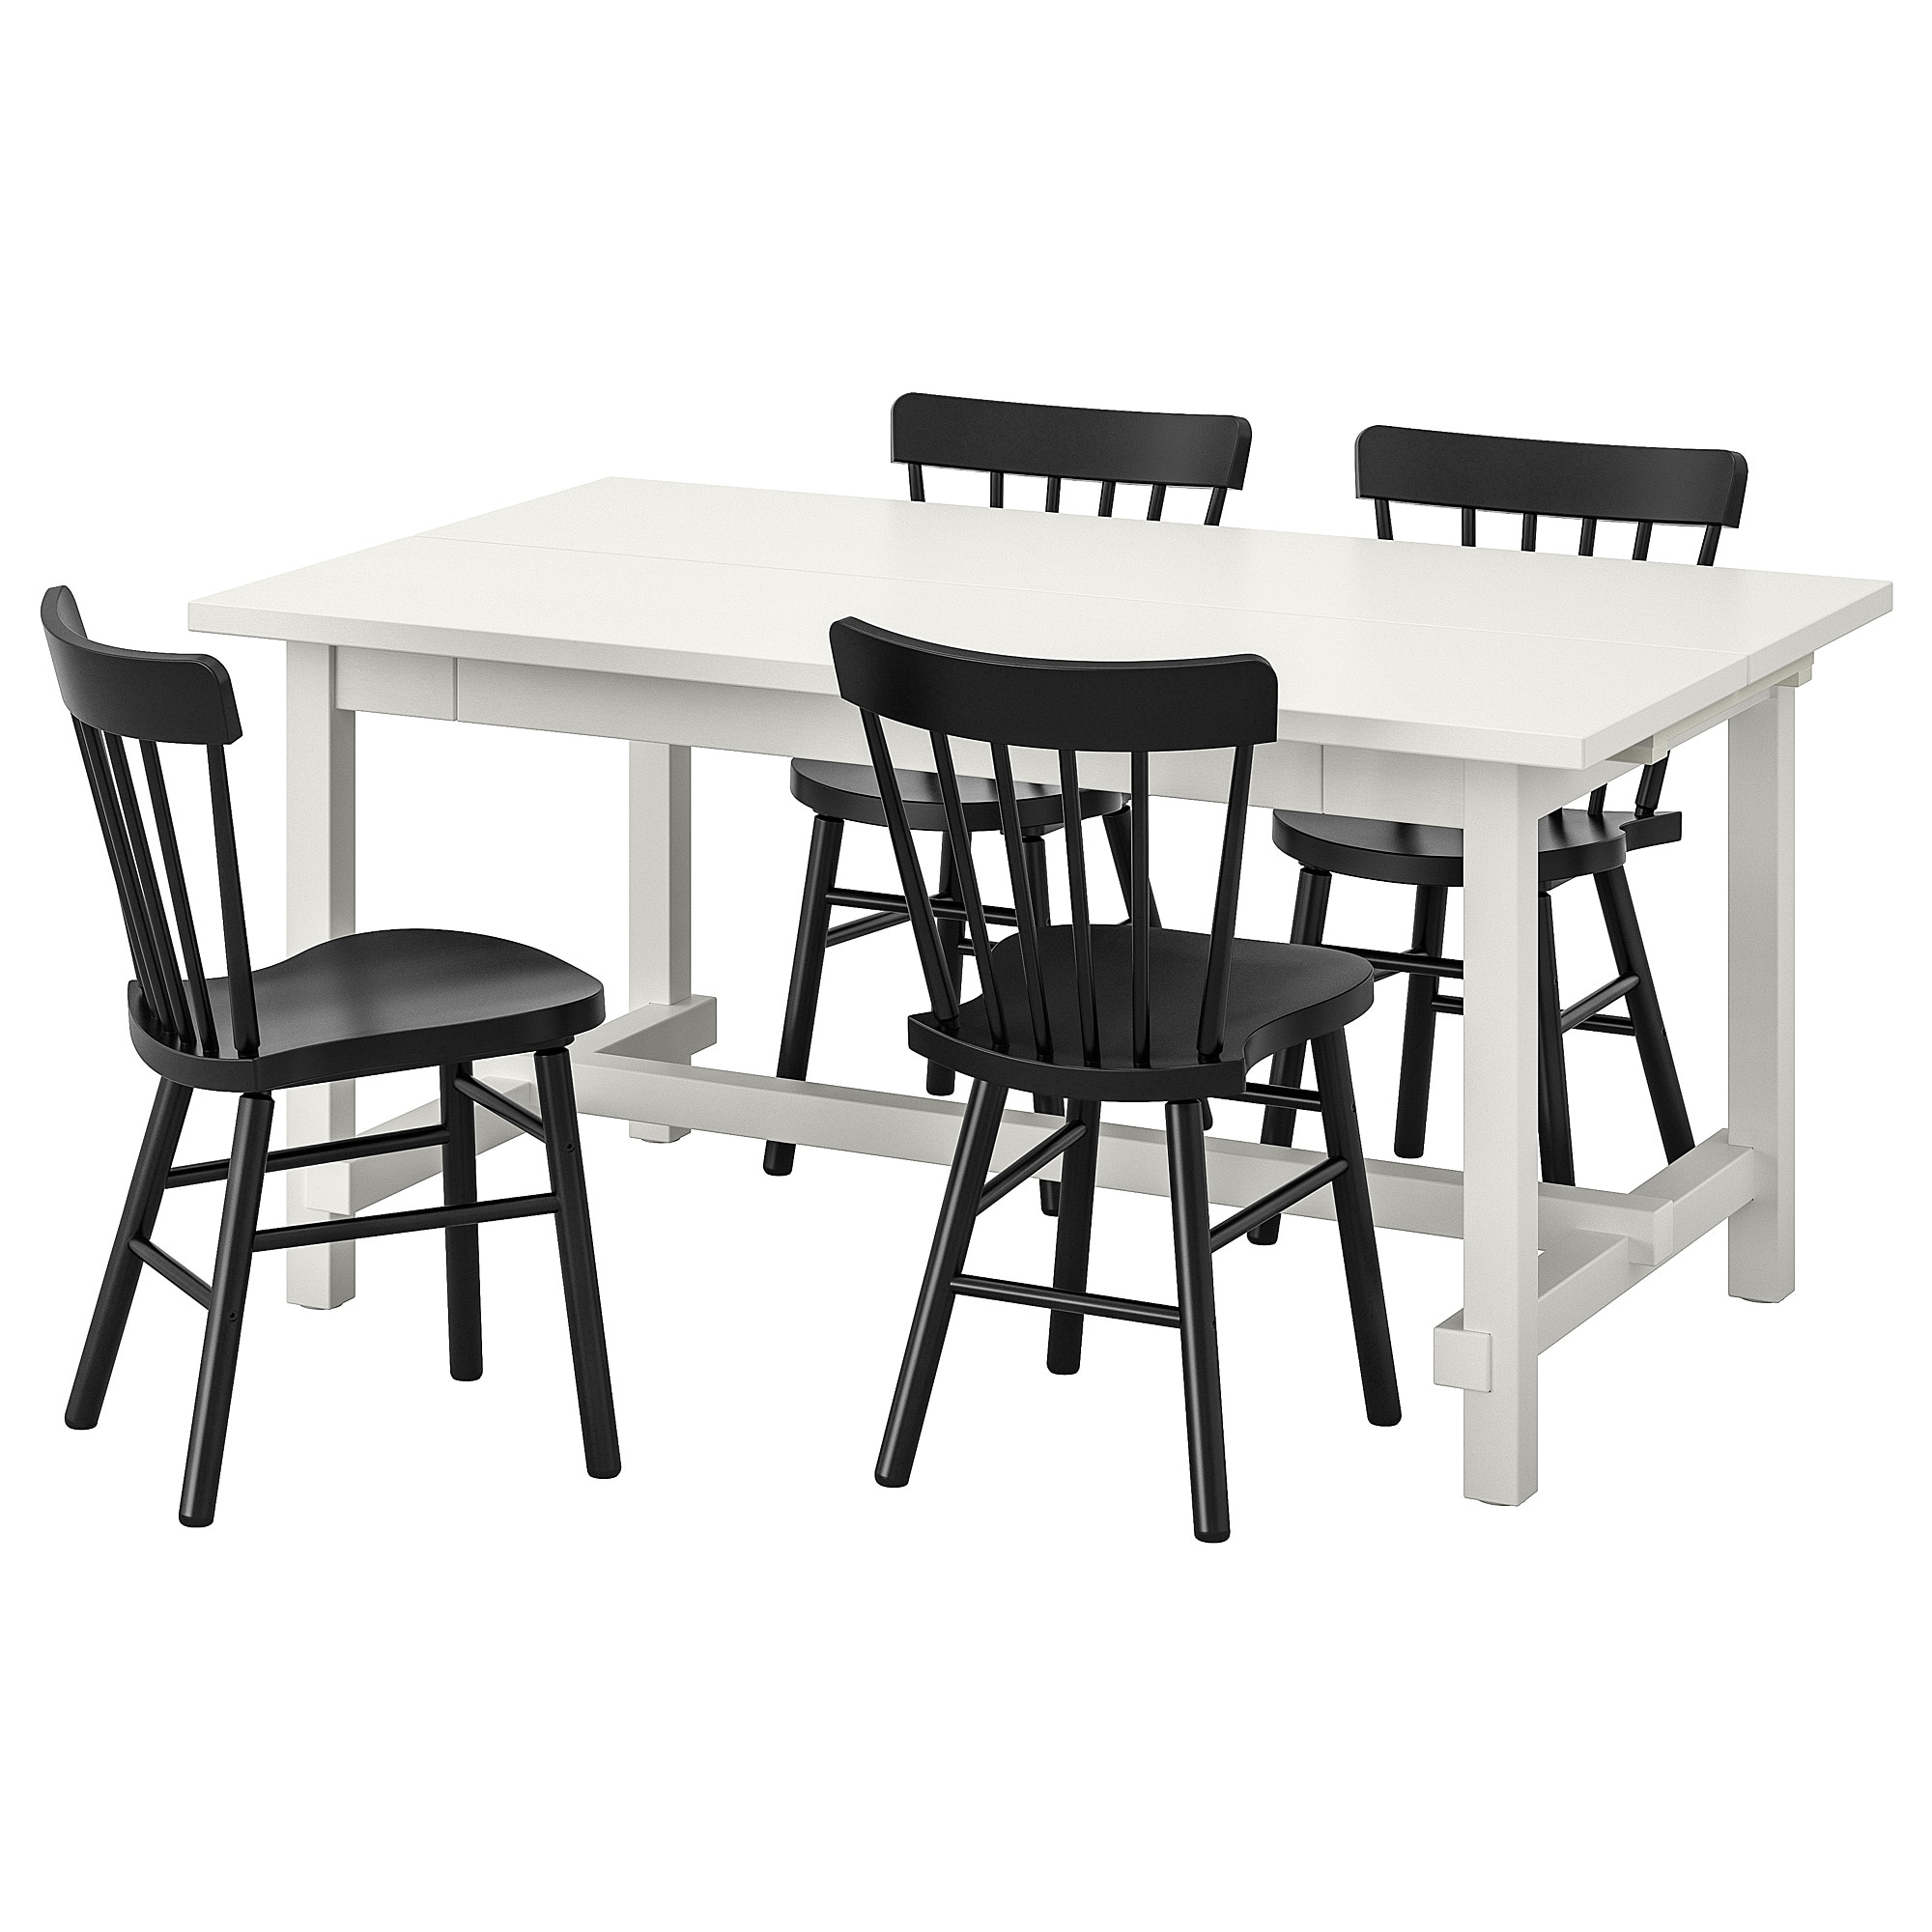 Table And 4 Chairs Nordviken / Norraryd White, Black In Most Current Castellanos Modern 5 Piece Counter Height Dining Sets (Image 15 of 20)